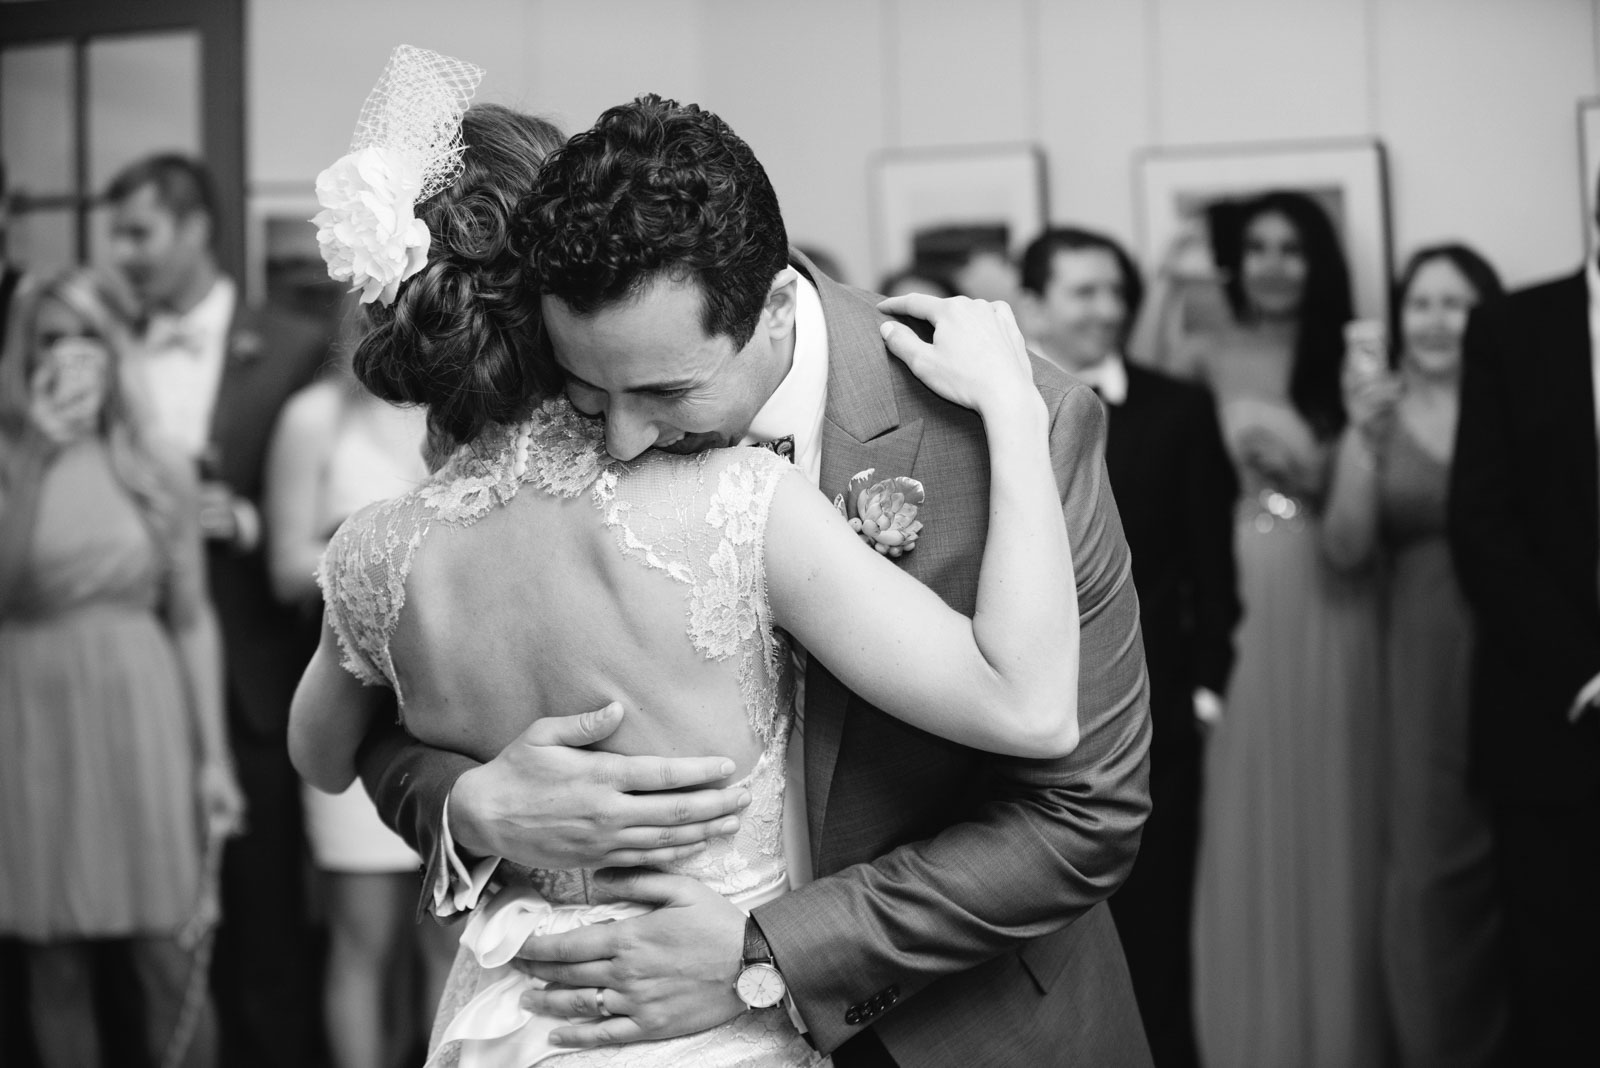 black and white intimate shot of groom hugging bride during first dance at wedding reception